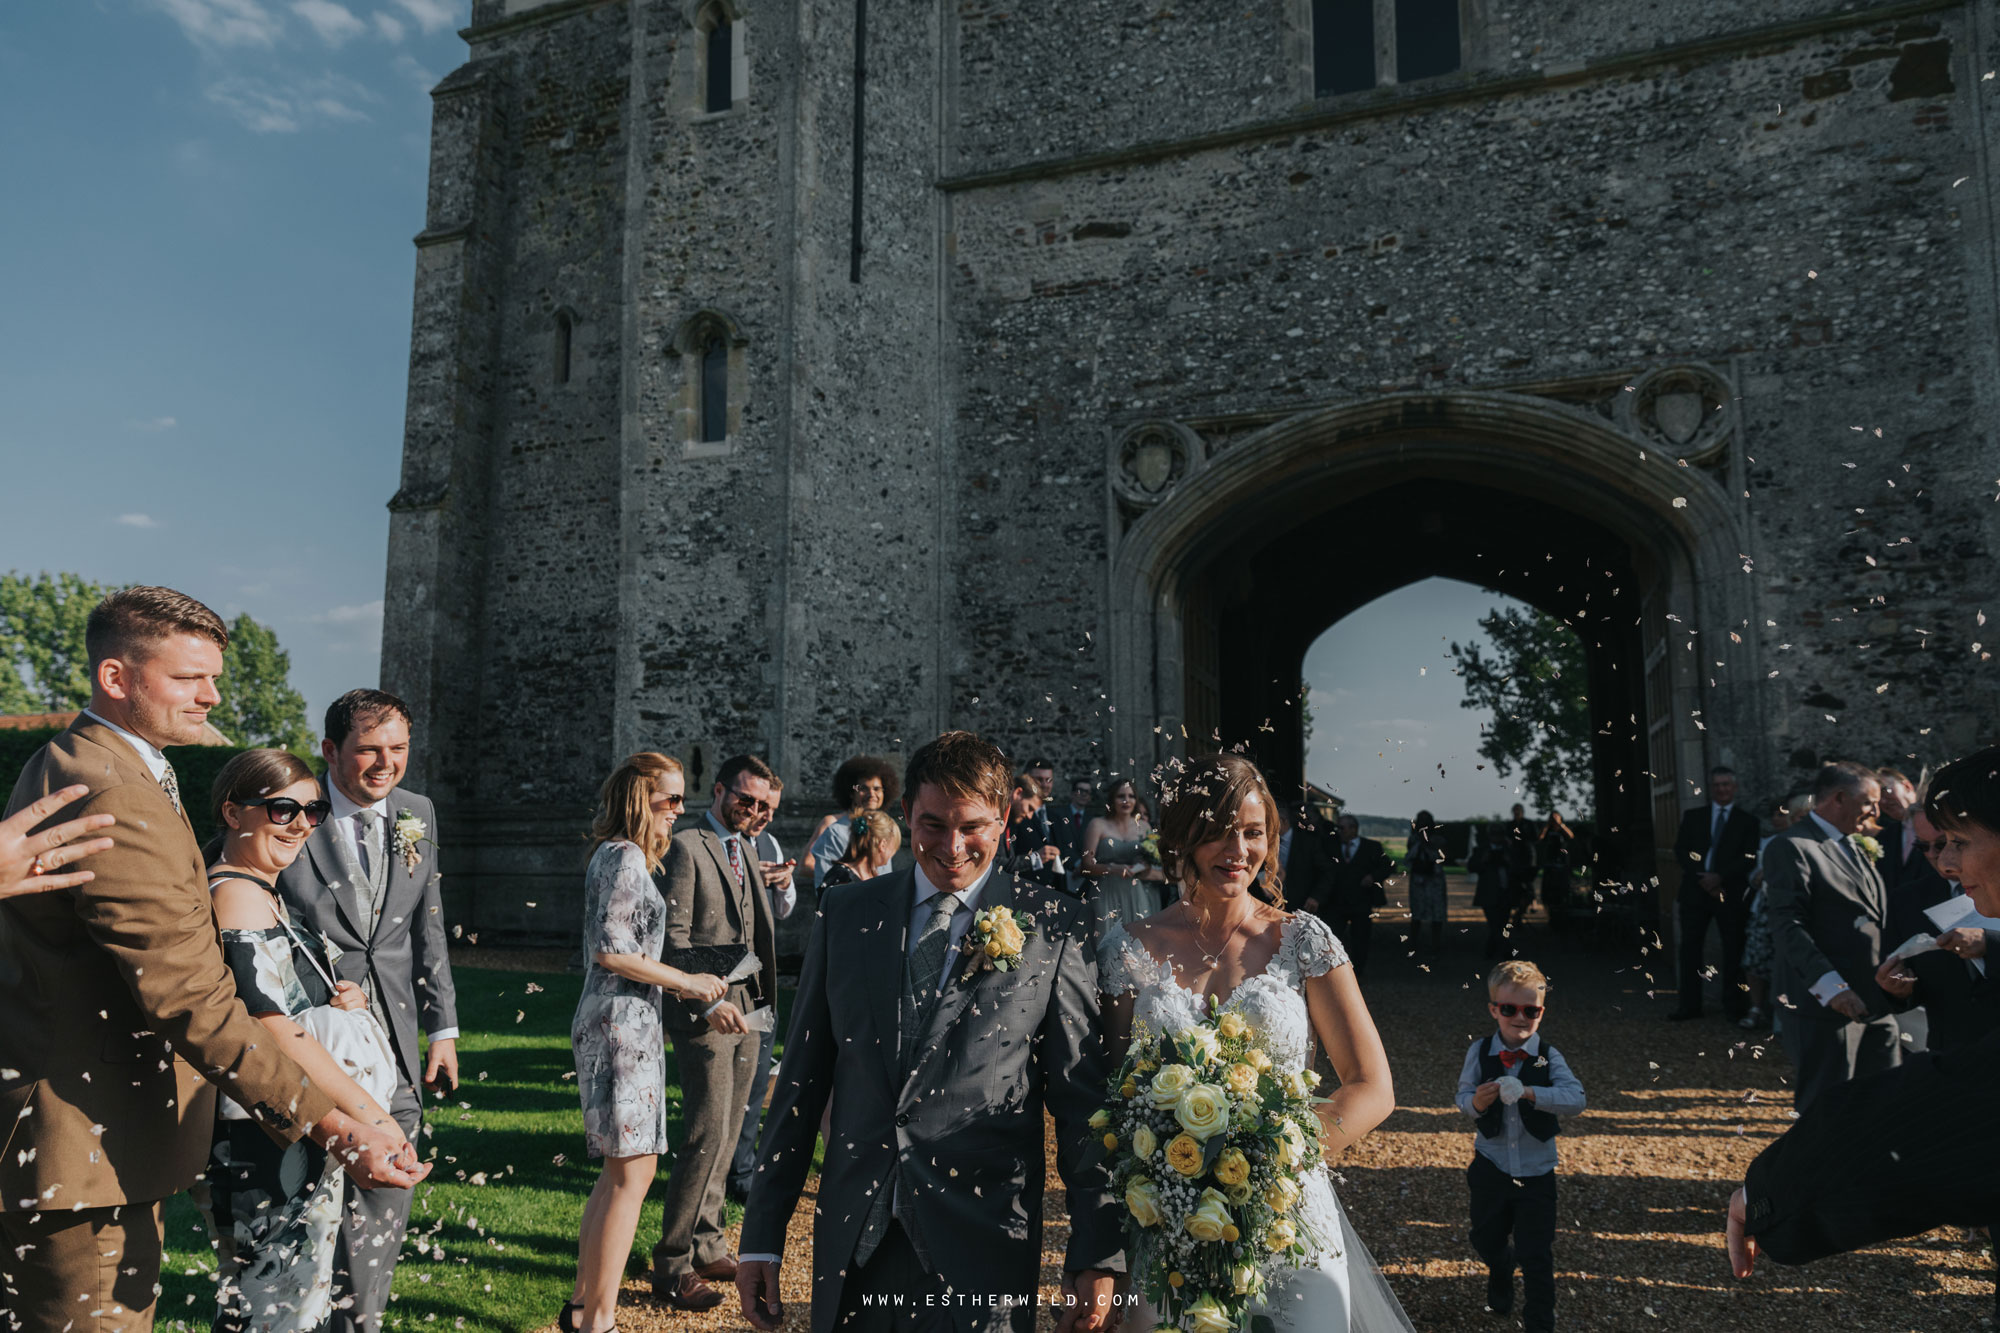 Pentney_Abbey_Wedding_Kings_Lynn_Norfolk_Esther_Wild_Wedding_Photography_IMG_0858.jpg